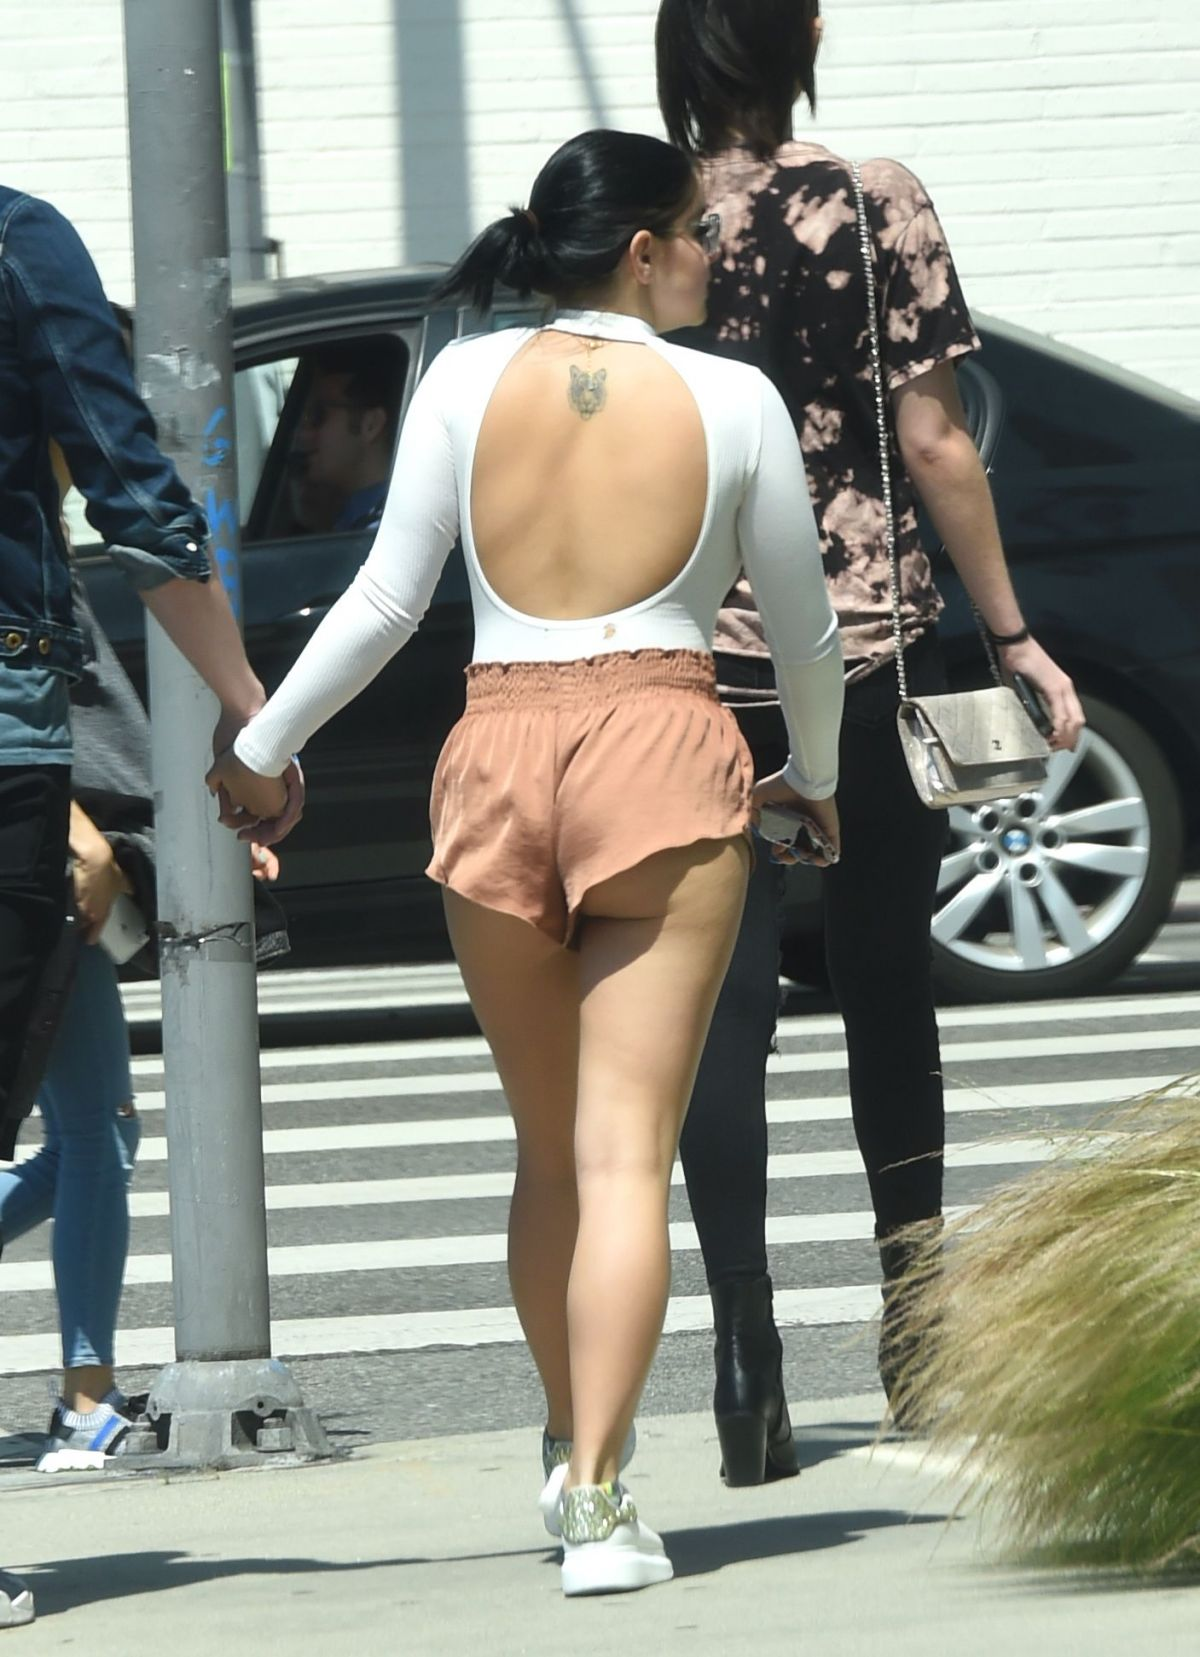 ariel winter spotted in cheeky shorts again, out for a stroll in